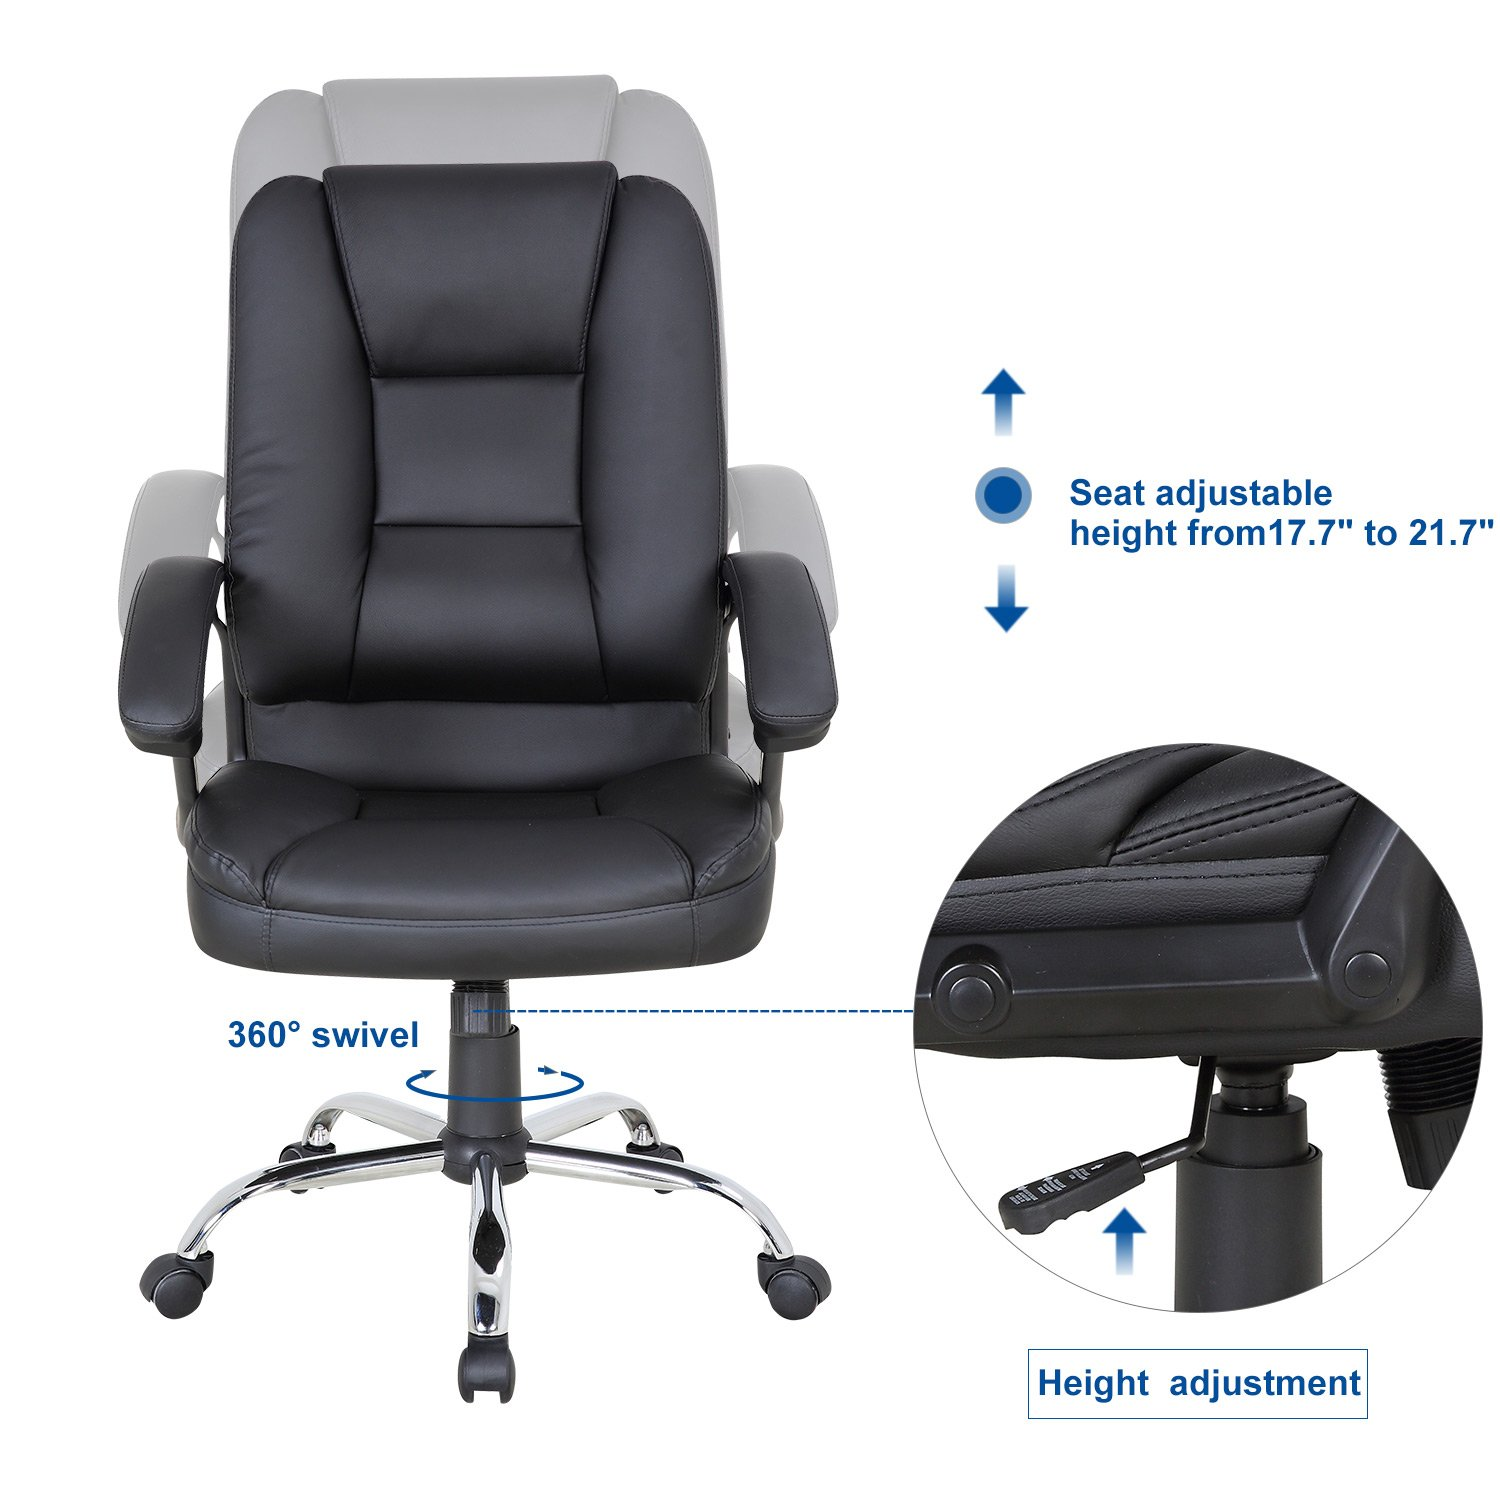 LCH PU Leather Office Chair Swivel Executive Chair with Tilt Function and Thick Seat, Ergonomic Computer Chair Headrest and Lumbar Support (Black) by LCH (Image #4)